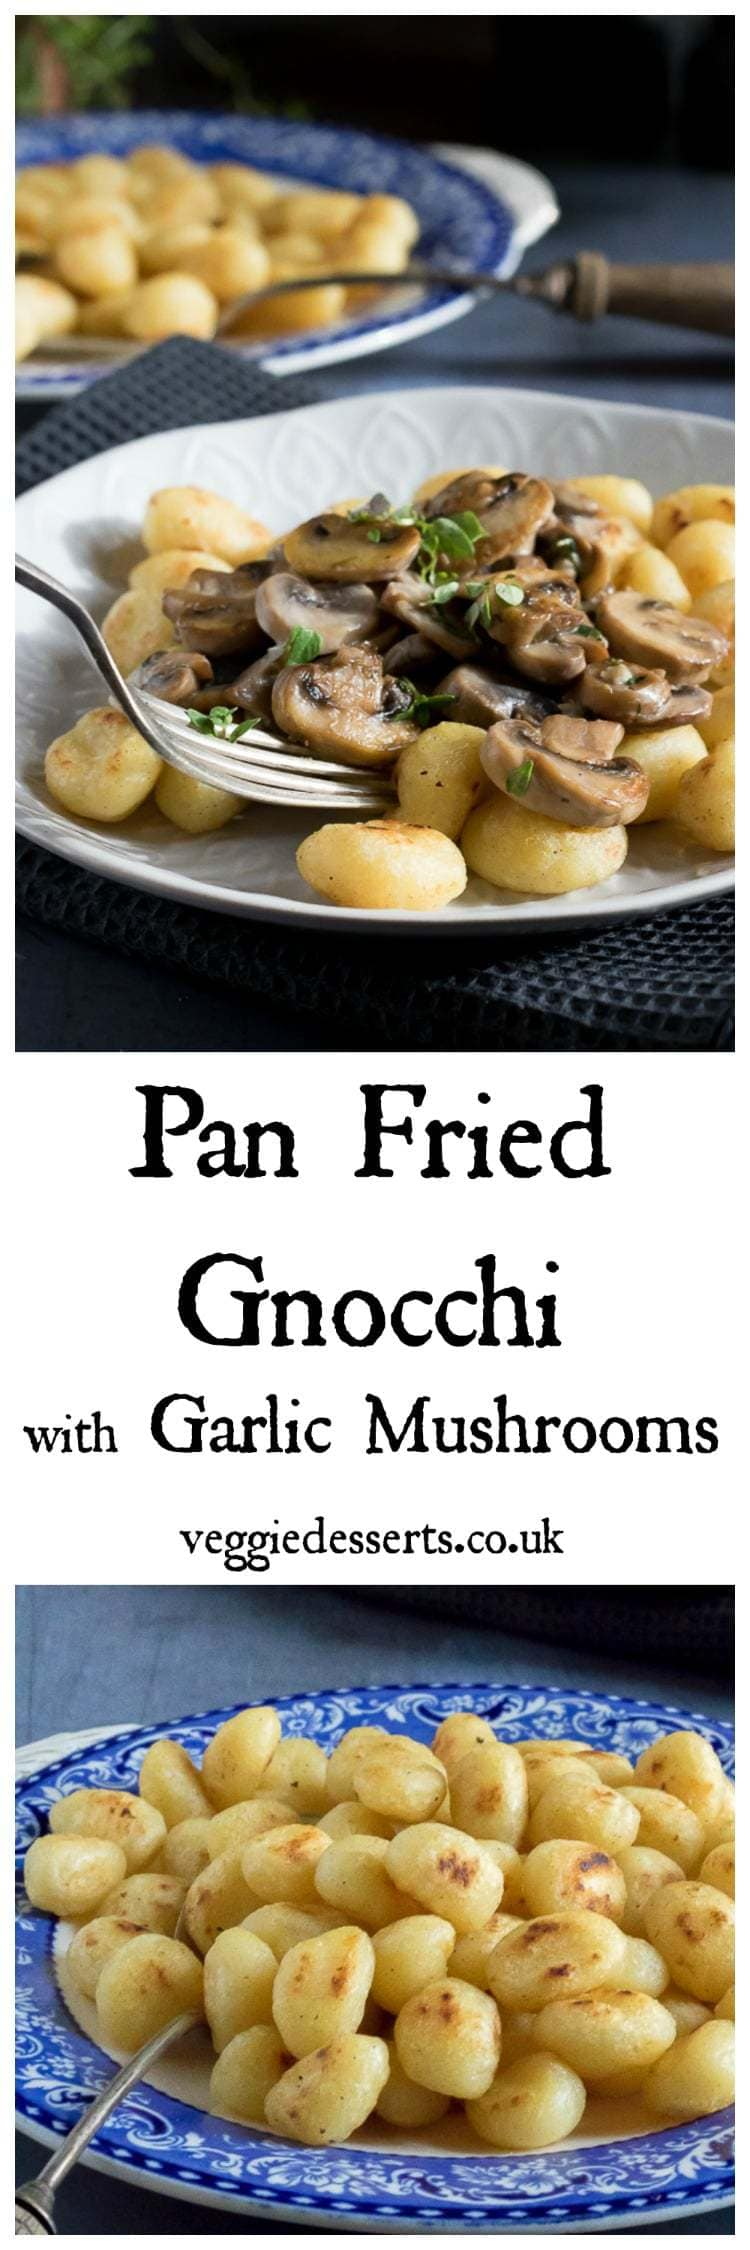 Fried gnocchi turns the Italian potato dumplings into crispy, delicate morsels of deliciousness. They're so easy to make with 2 ingredients in just 7 minutes! I've topped them with creamy garlic mushrooms for a very quick and easy midweek meal.